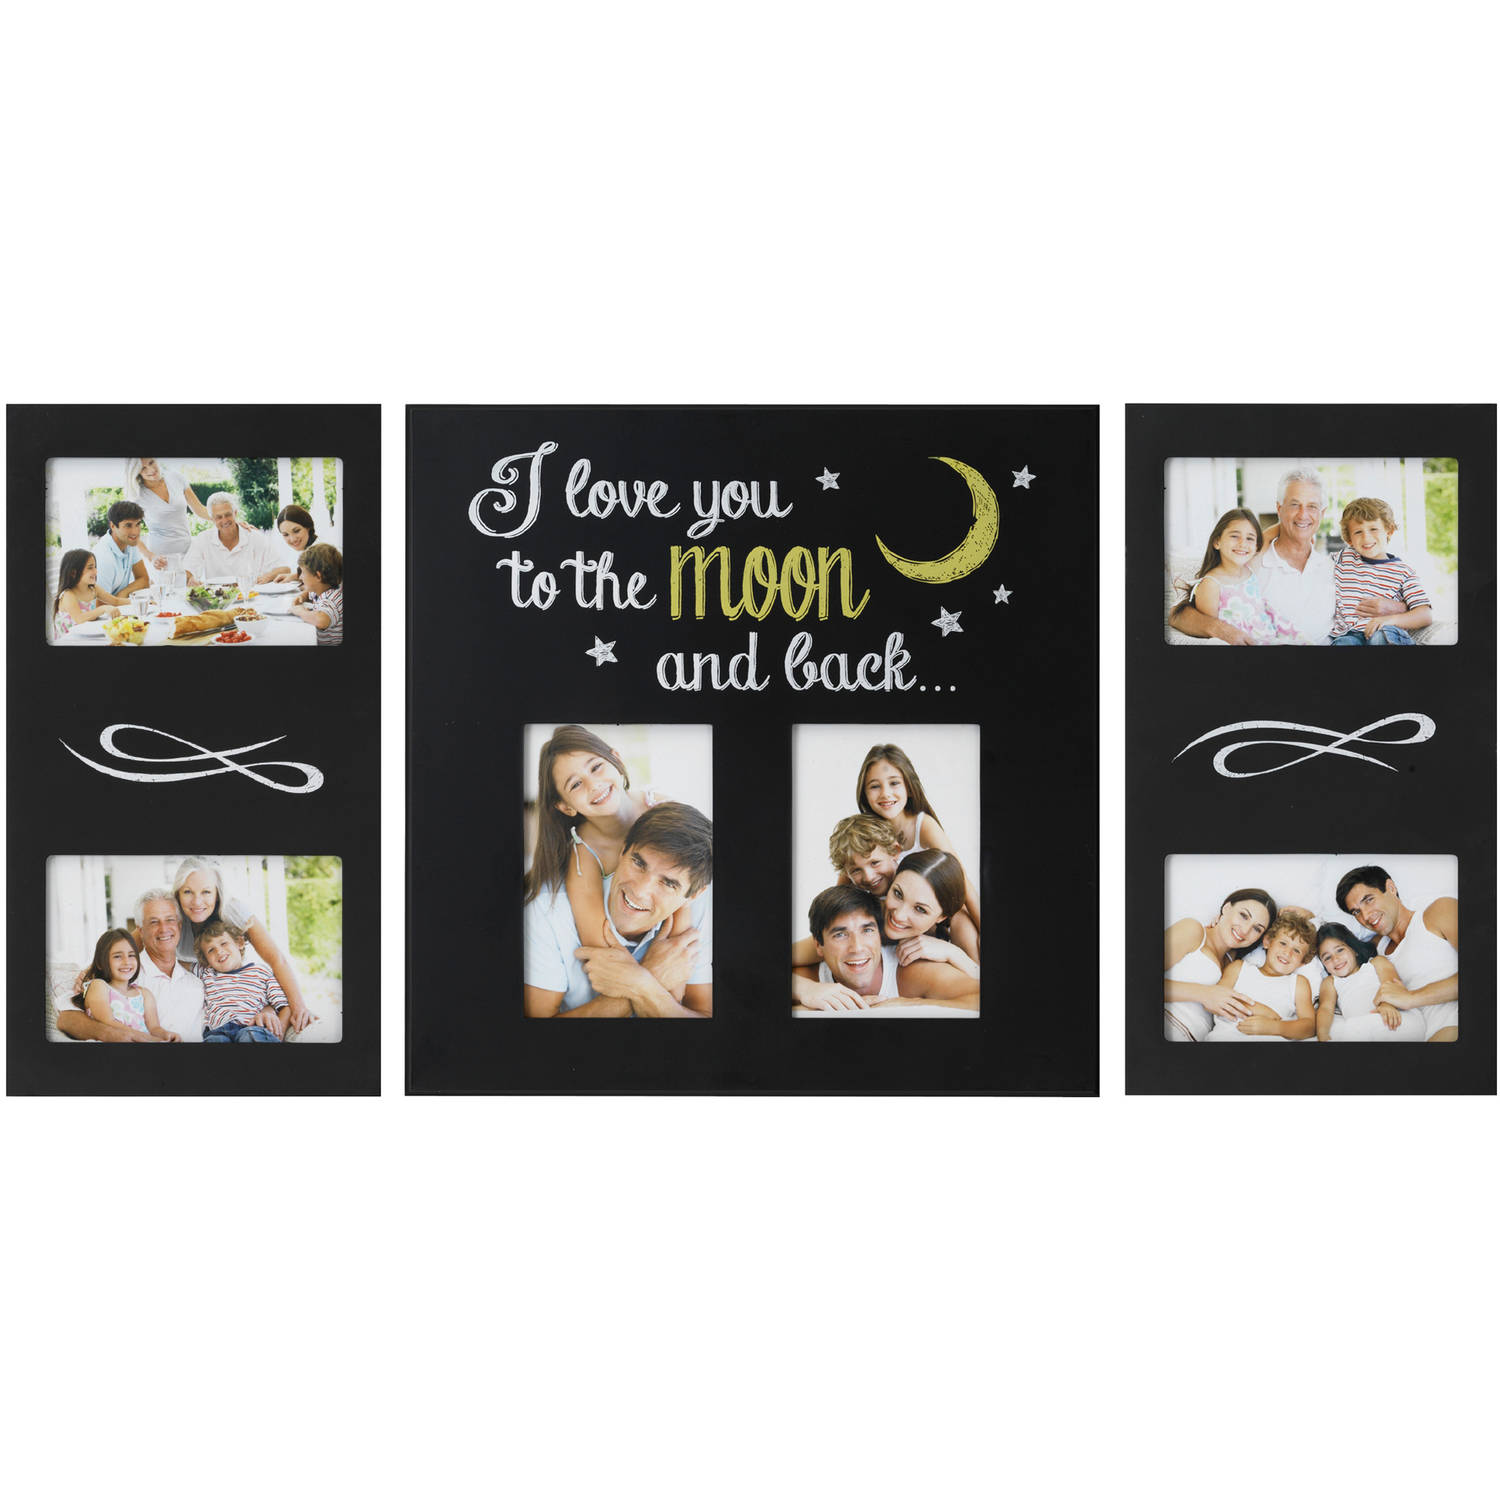 Melannco 6-Opening I Love You To The Moon And Back Collage, Set of 3